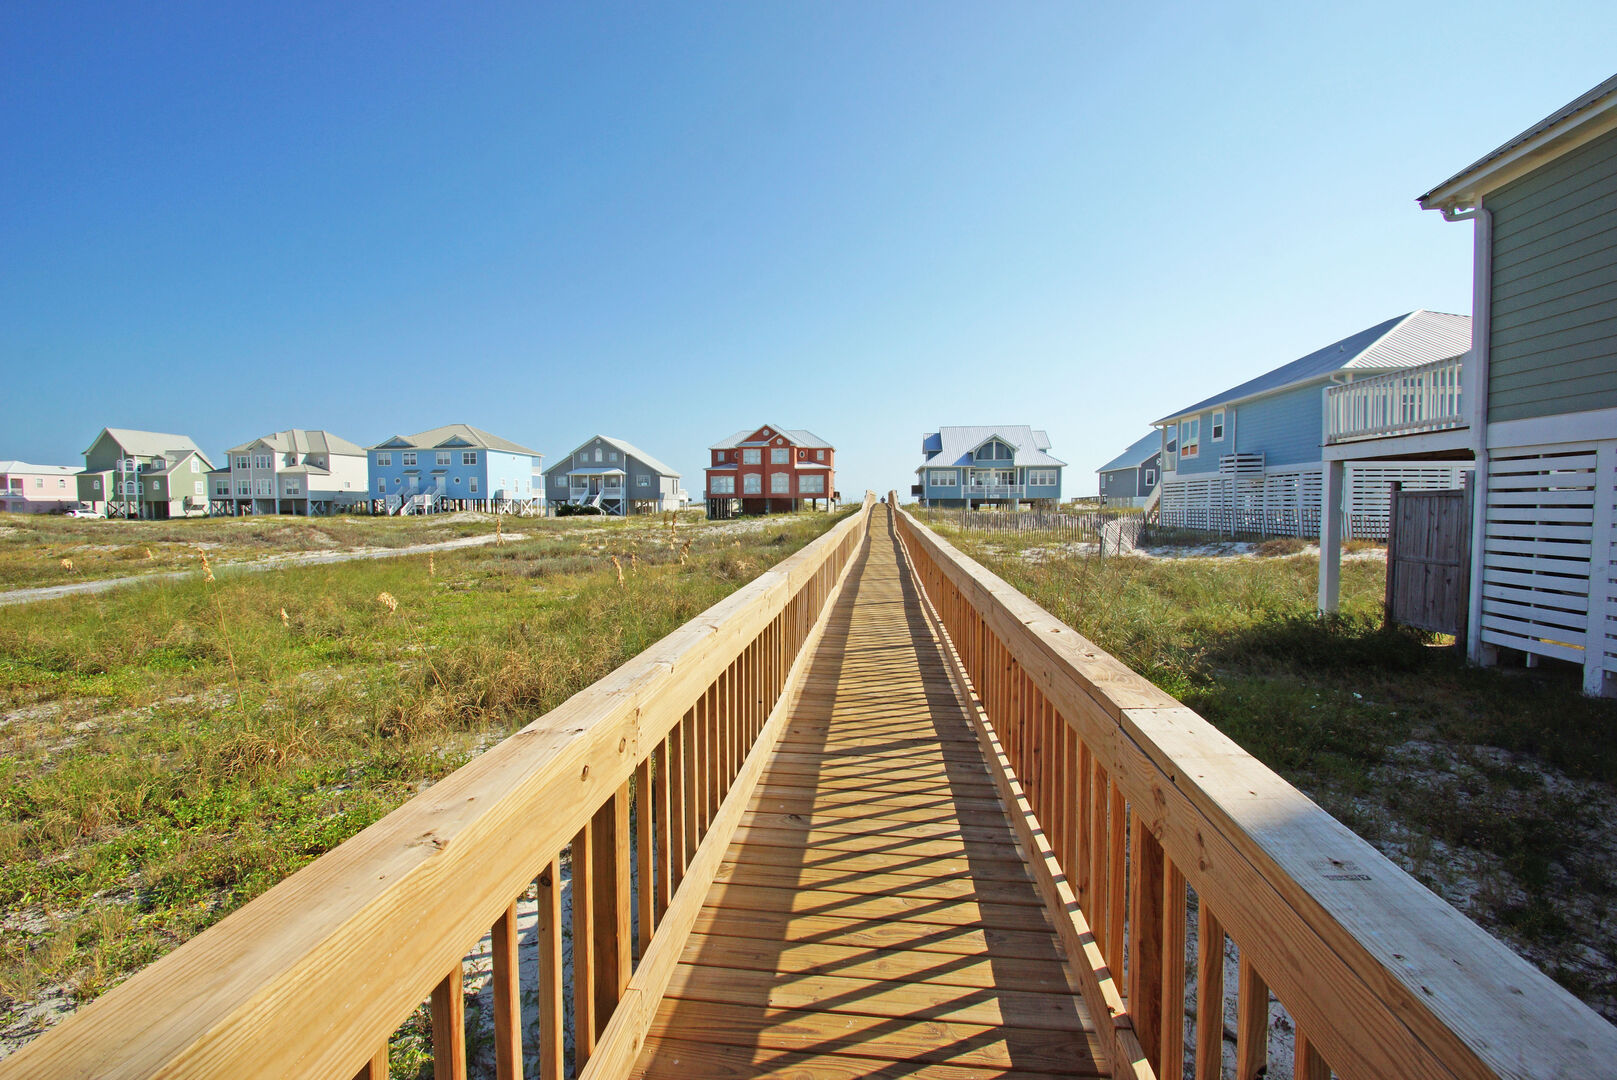 Beach Access by Wood Pathway.